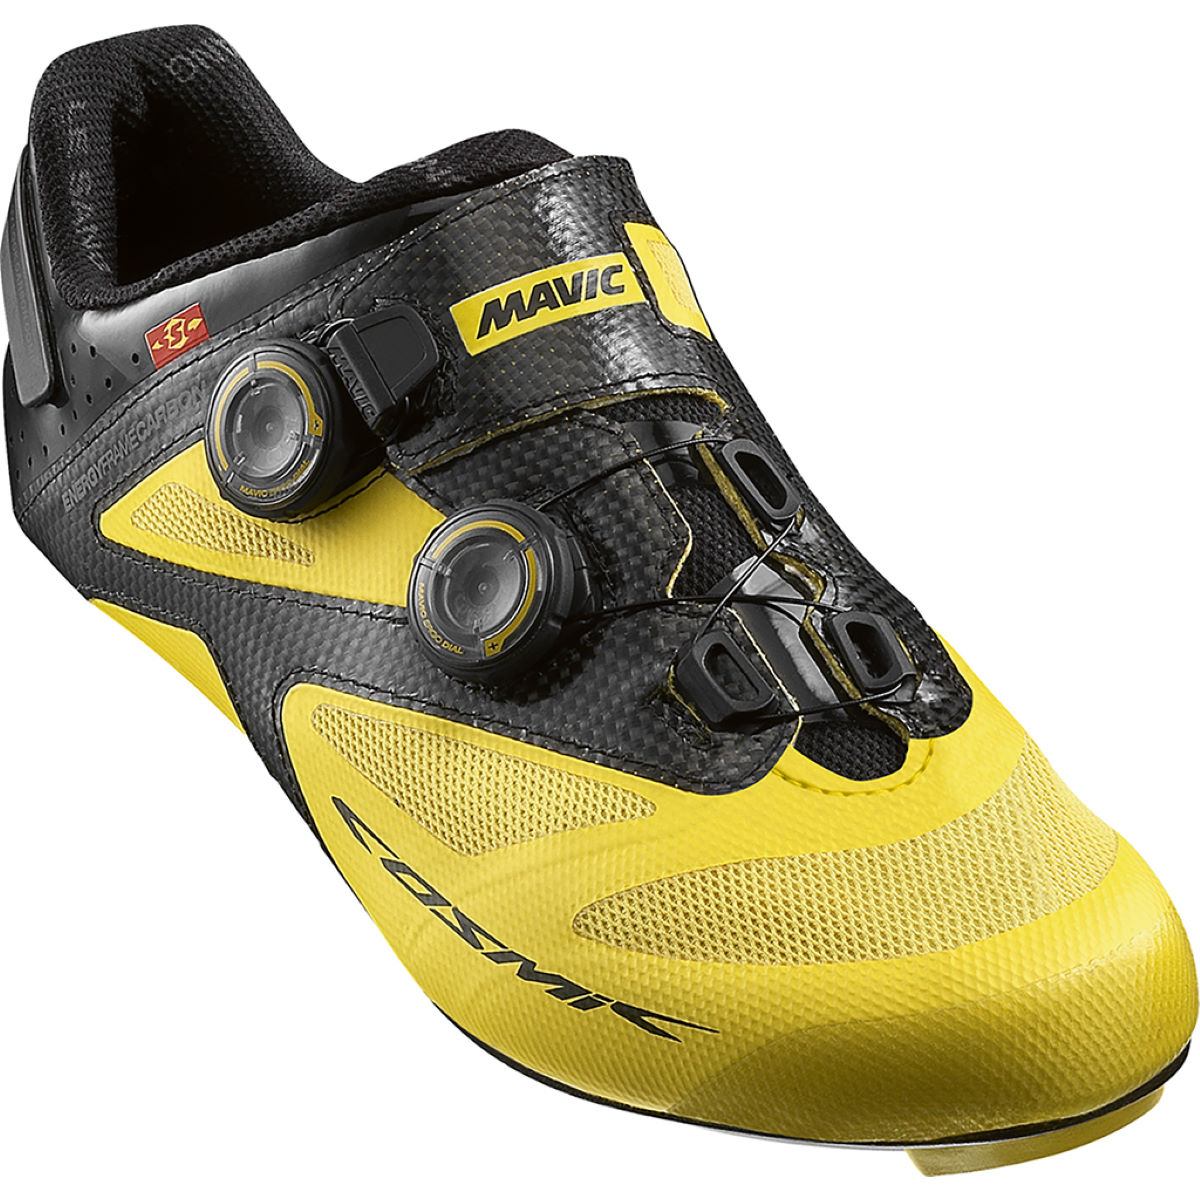 Chaussures Mavic Cosmic Ultimate Maxi Fit - 7,5 UK Jaune Chaussures de route